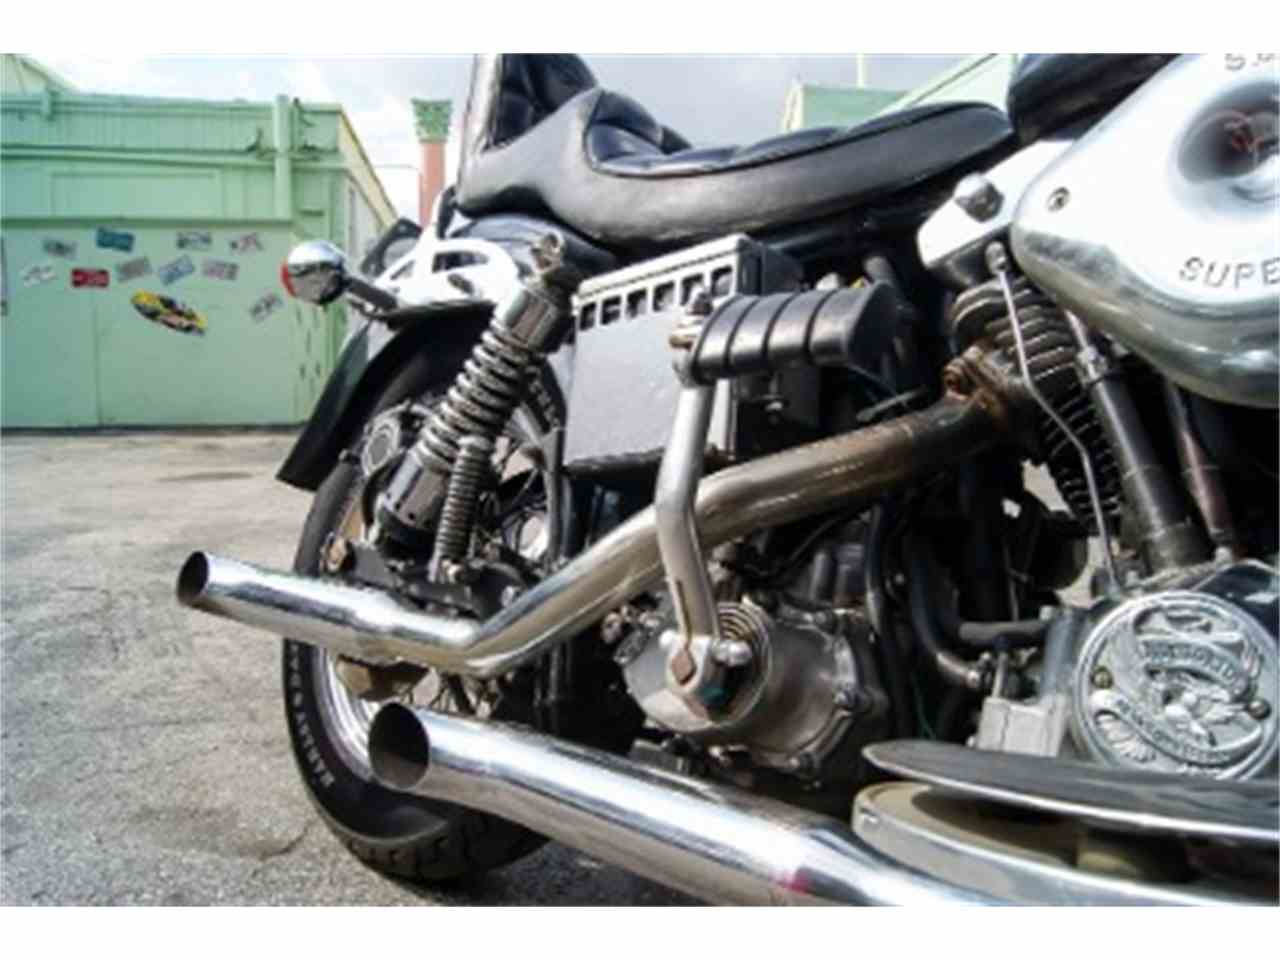 Large Picture of 1982 HARLEY DAVIDSON Harley Davidson located in Miami Florida - $8,500.00 - FVQR